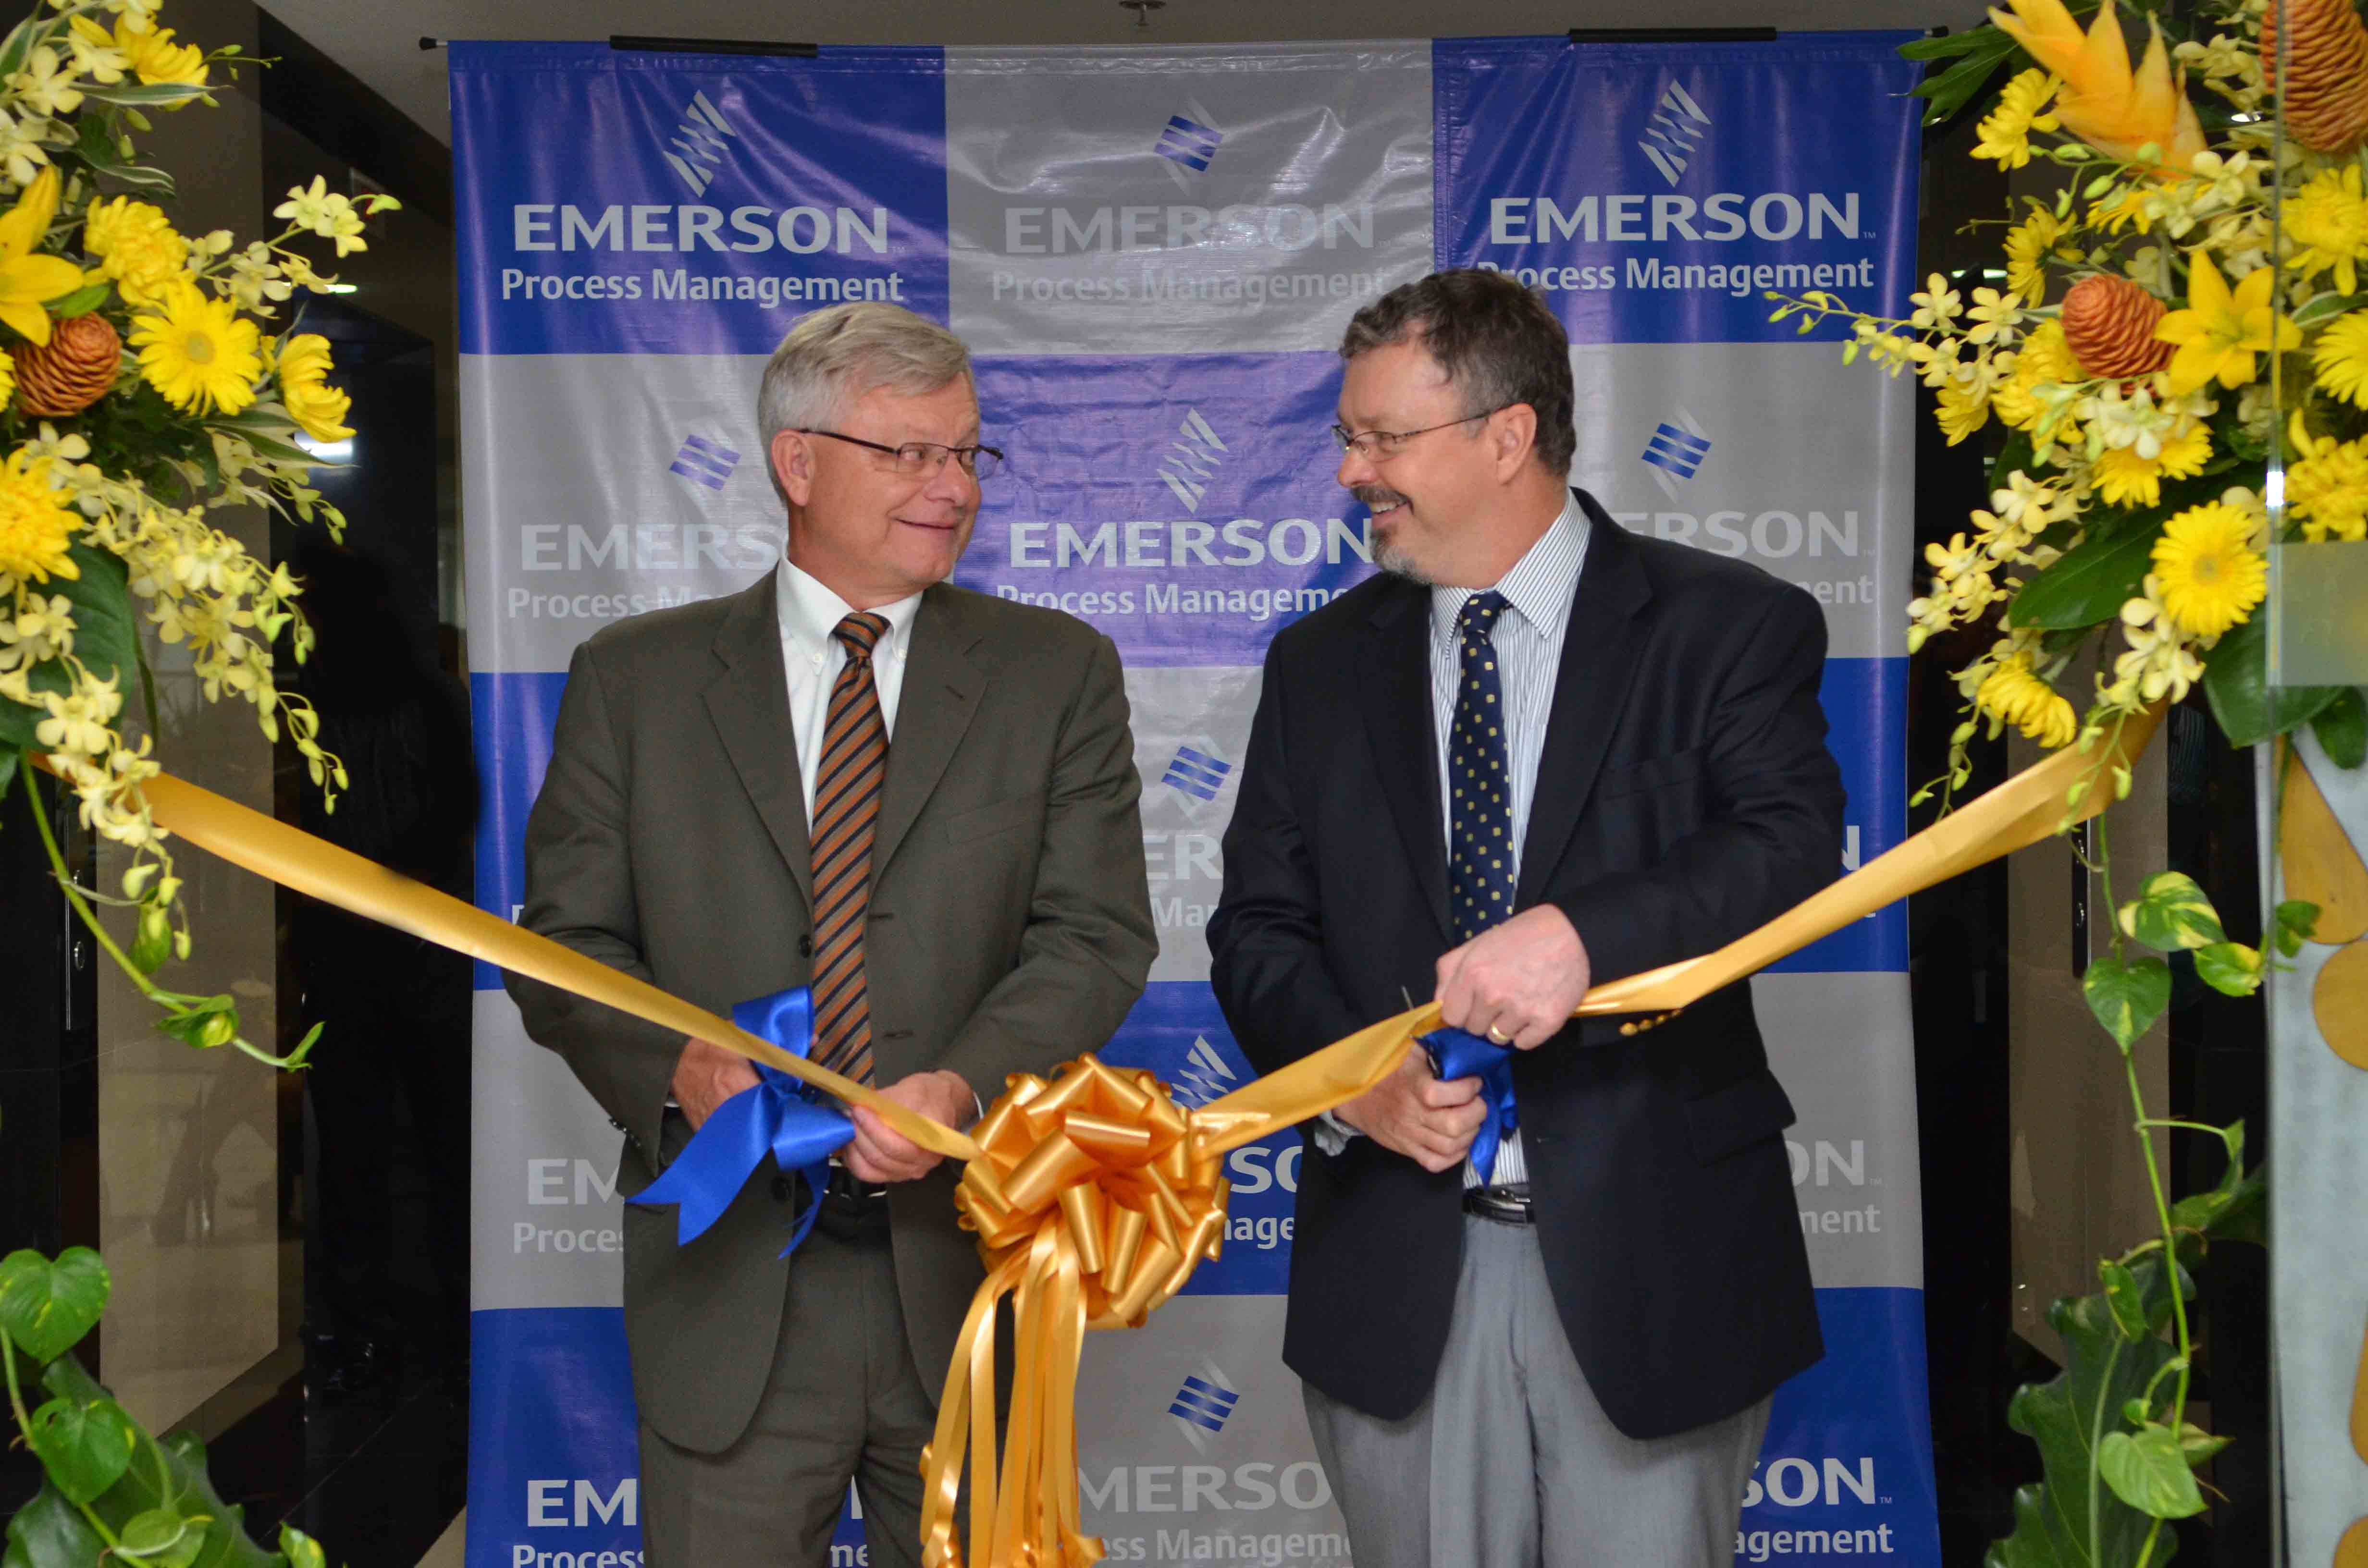 Talented workforce prompts Emerson to put up new shared